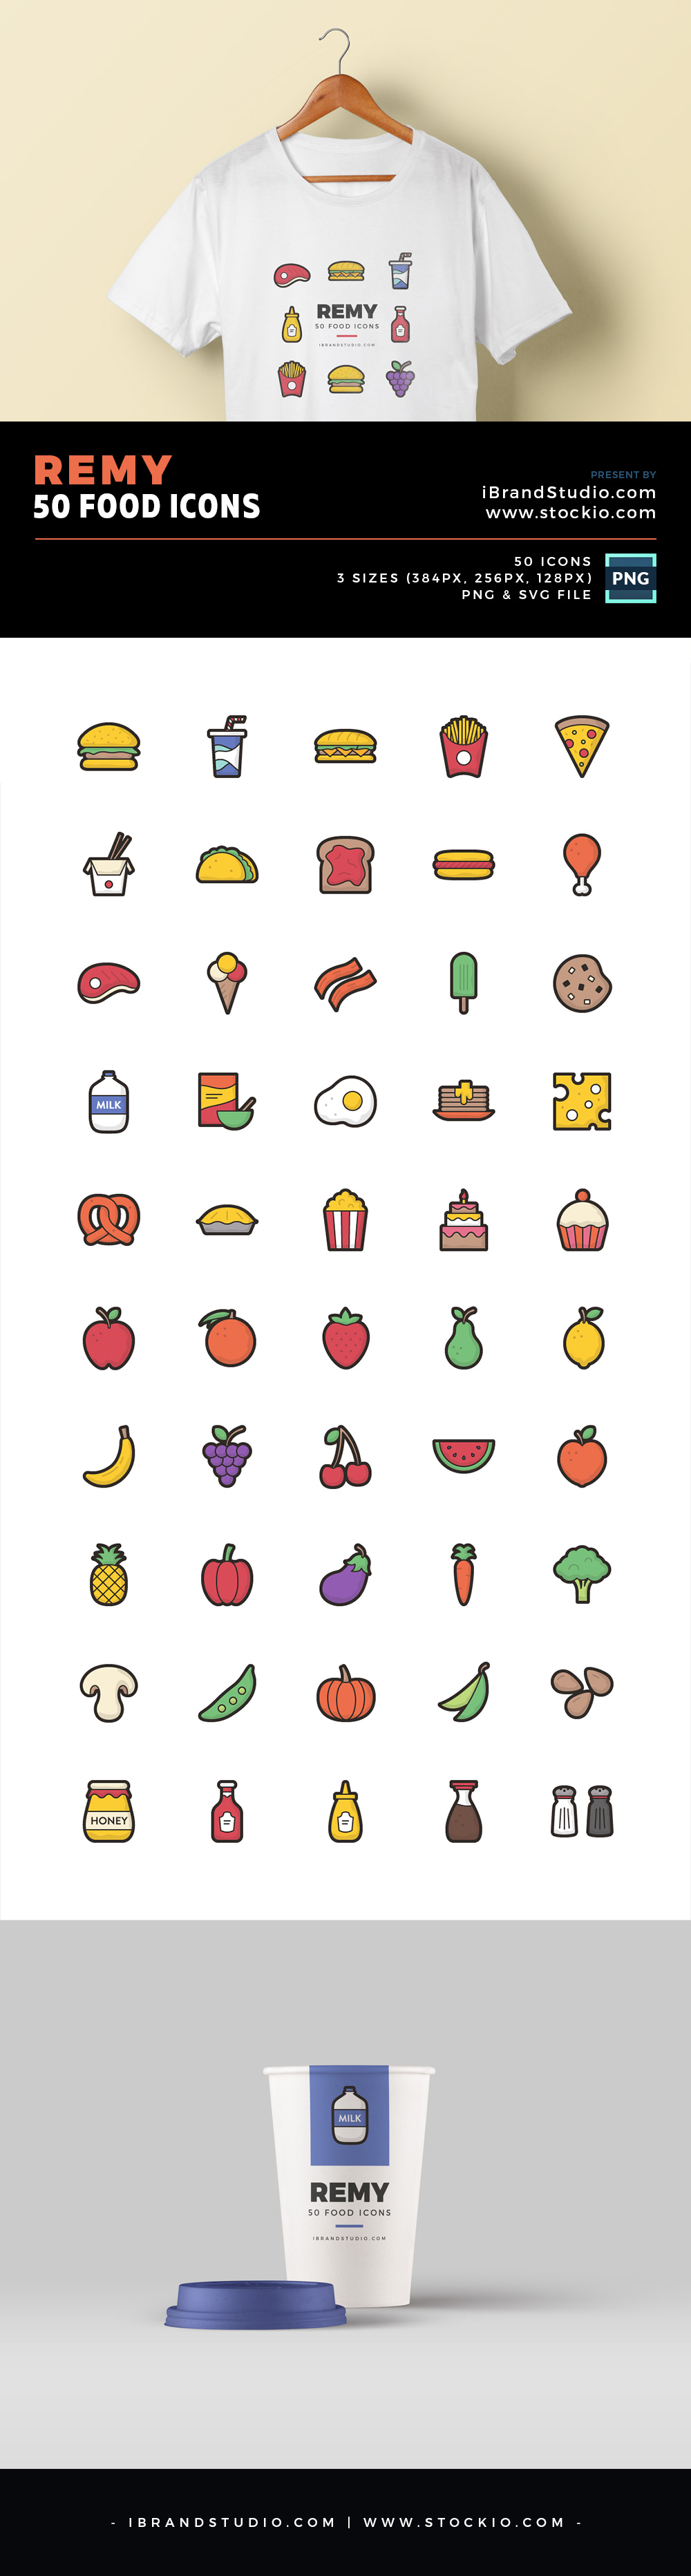 Free Remy Food Icon Set